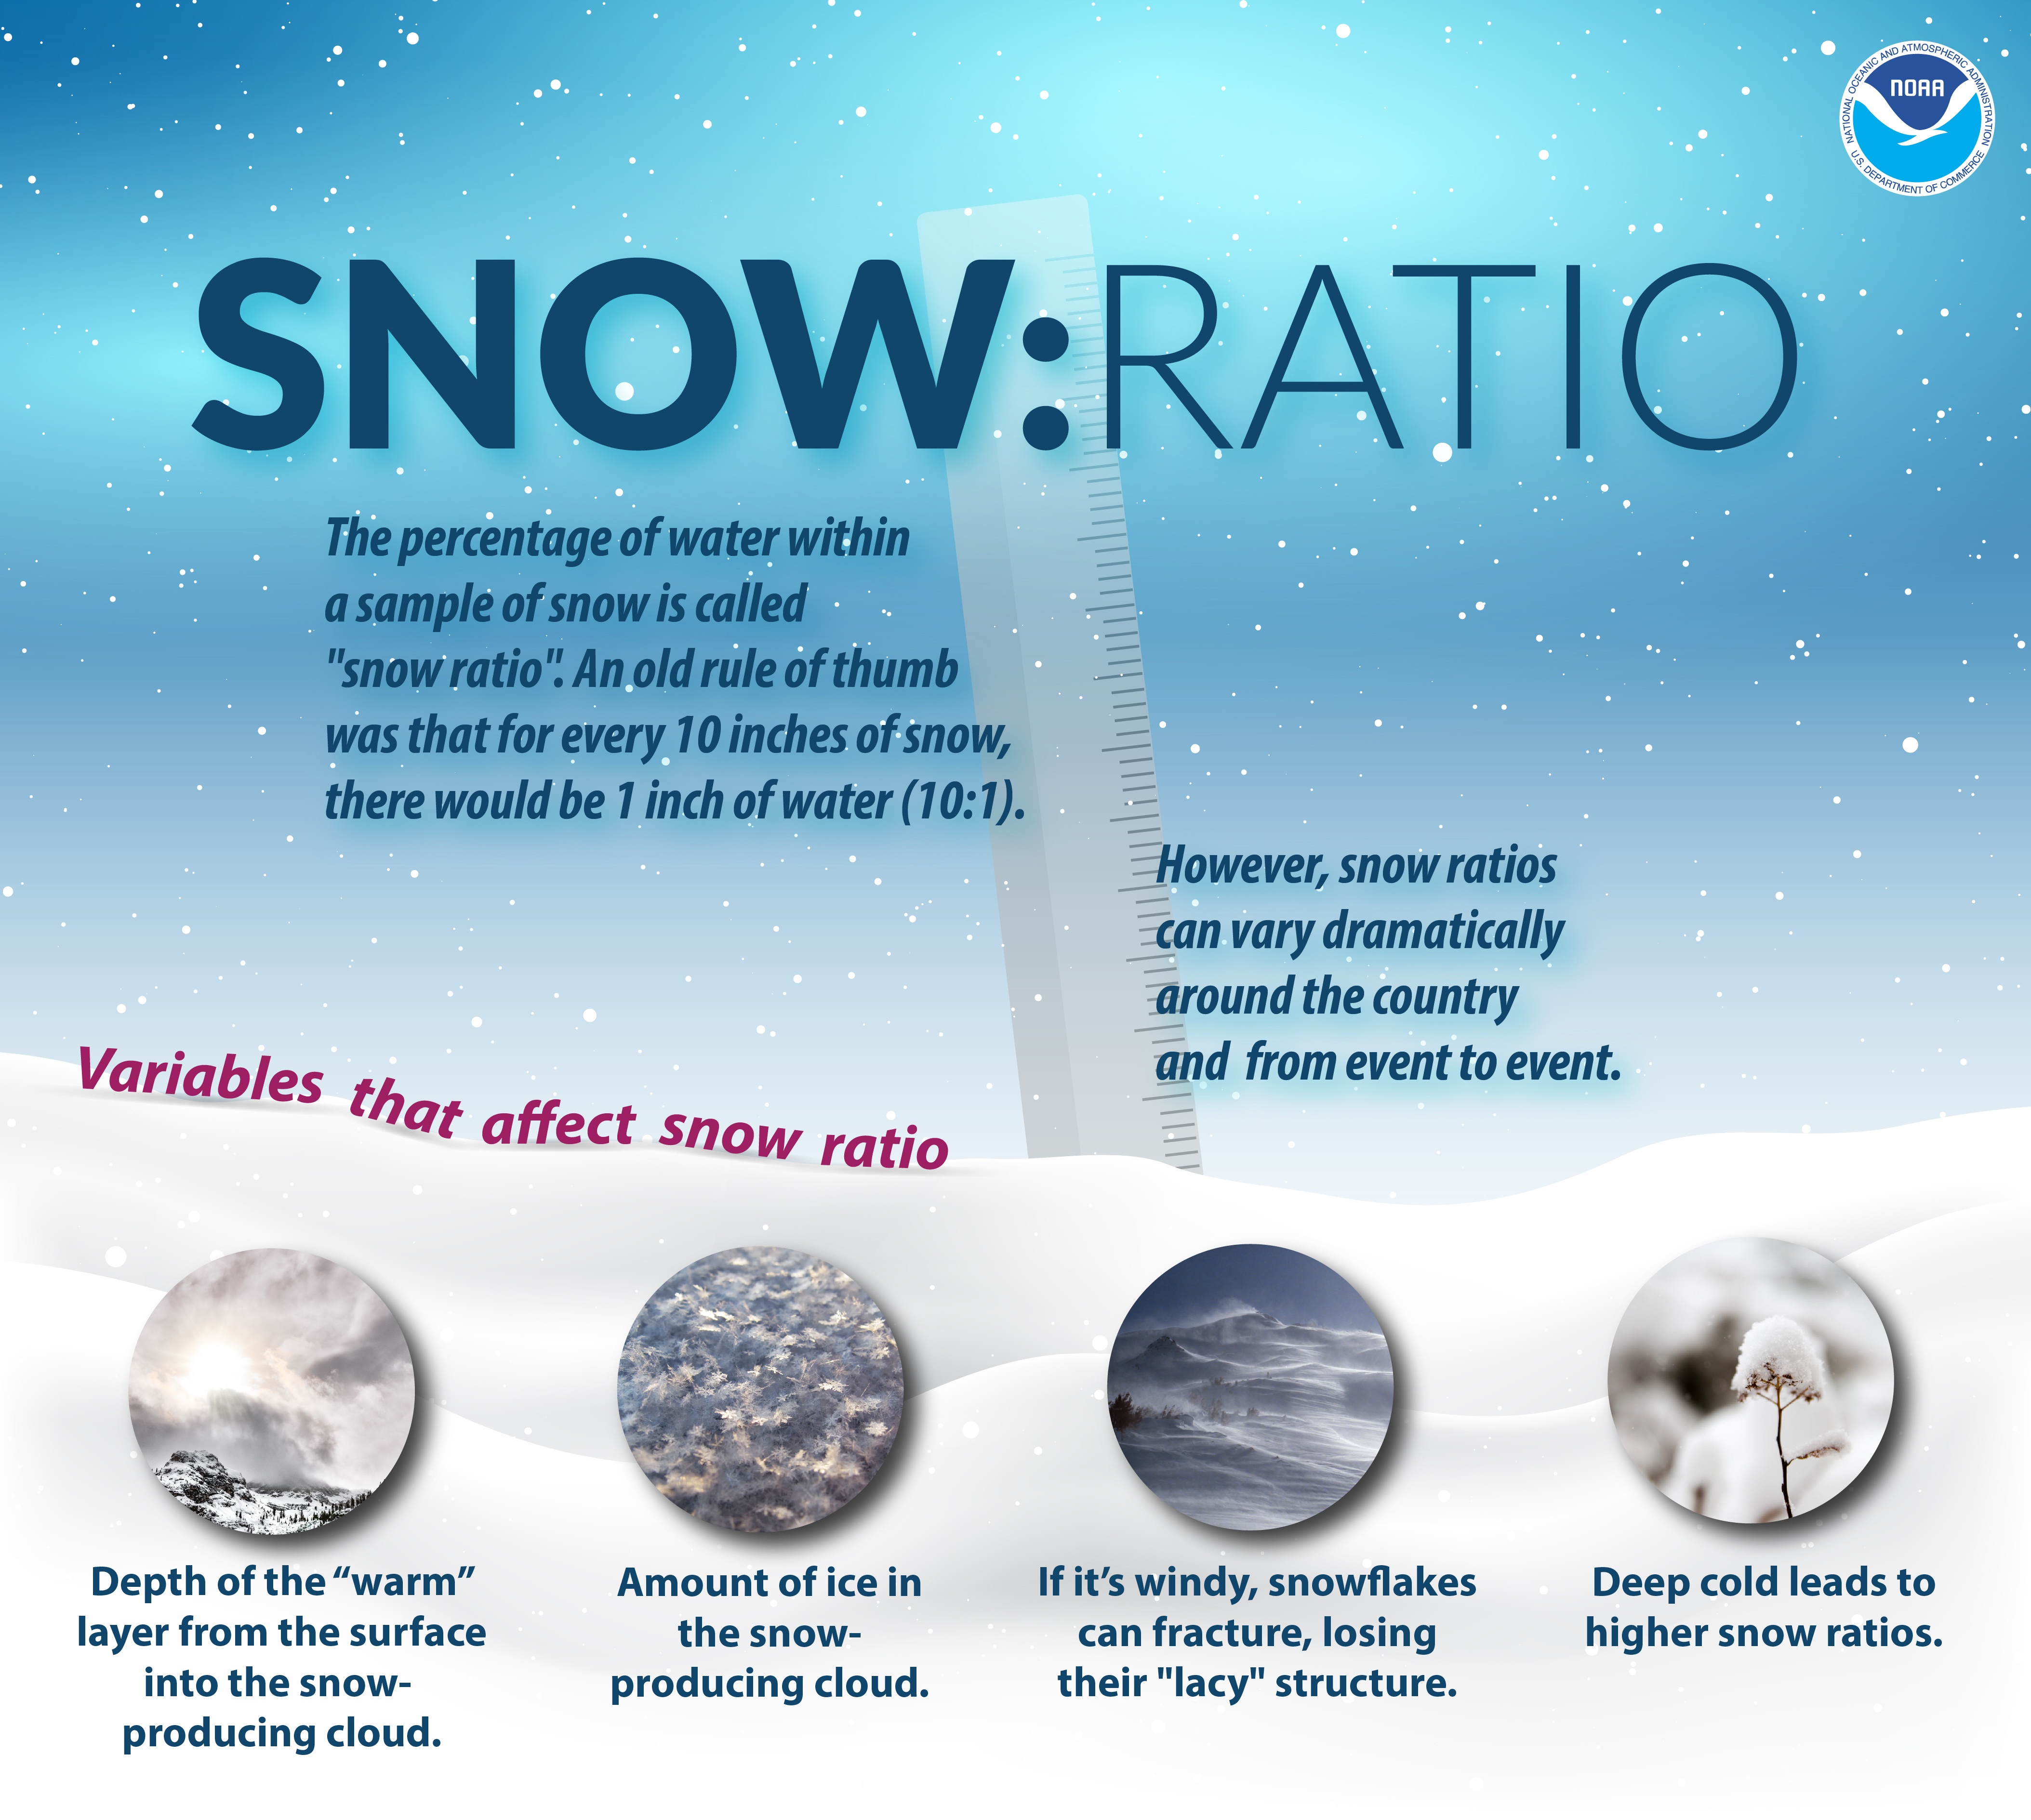 Snow Ratio: The percentage of water within a sample of snow is called 'snow ratio'. An old rule of thumb was that for every to inches of snow, there would be 1 inch of water (10:1). However, snow ratios can vary dramatically around the country and from event to event.Variables that affect snow ratio: 1) Depth of the 'warm' layer from the surface into the snow-producing cloud. Amount of ice in the snow-producing cloud. If its windy, snowflakes can fracture, losing their 'lacy' structure. Deep cold leads to higher snow ratios.